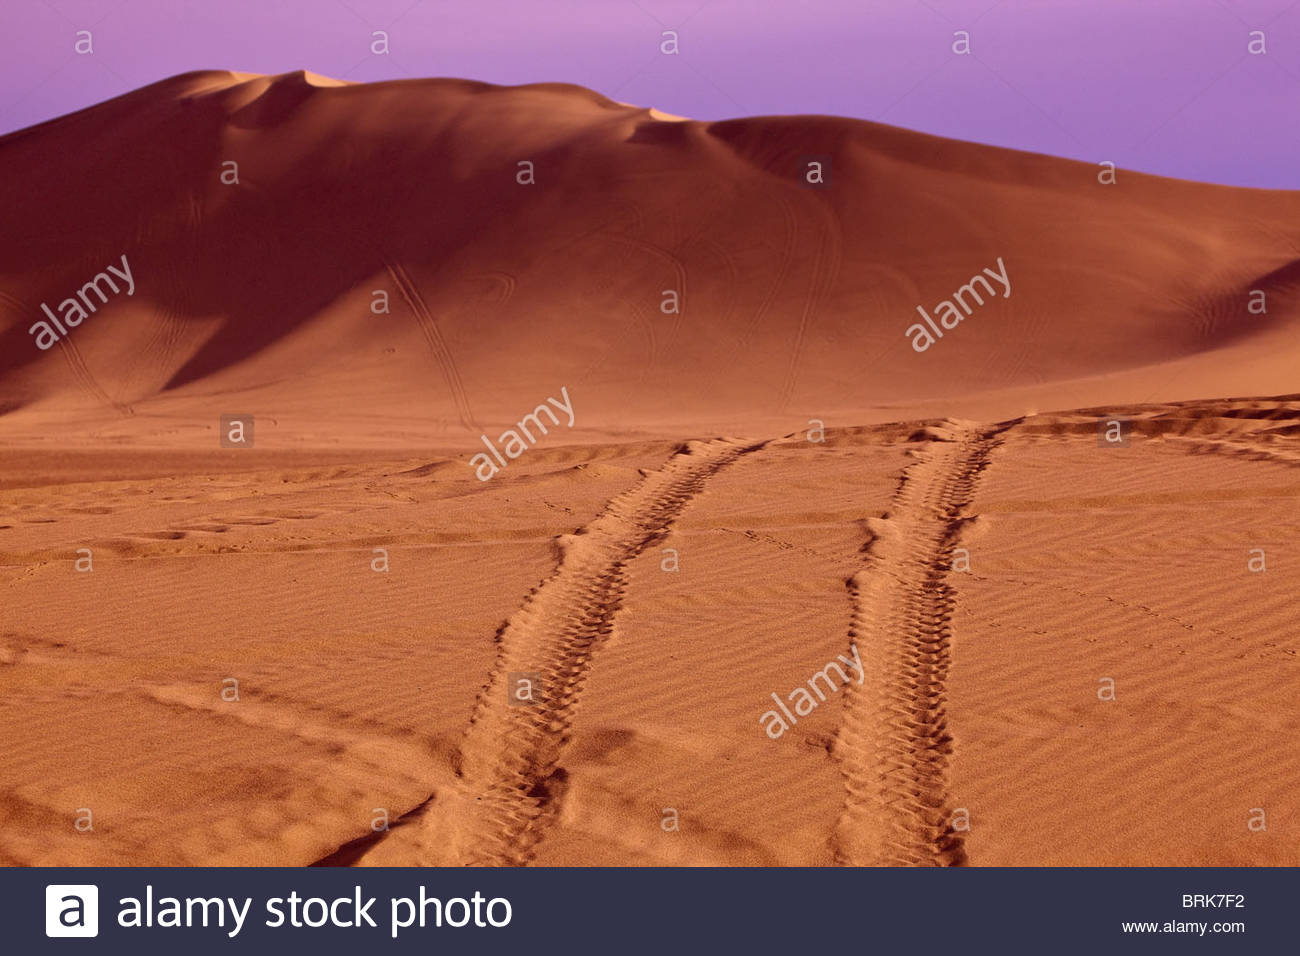 Tire tracks in a recreational area for off-road vehicle sports. - Stock Image